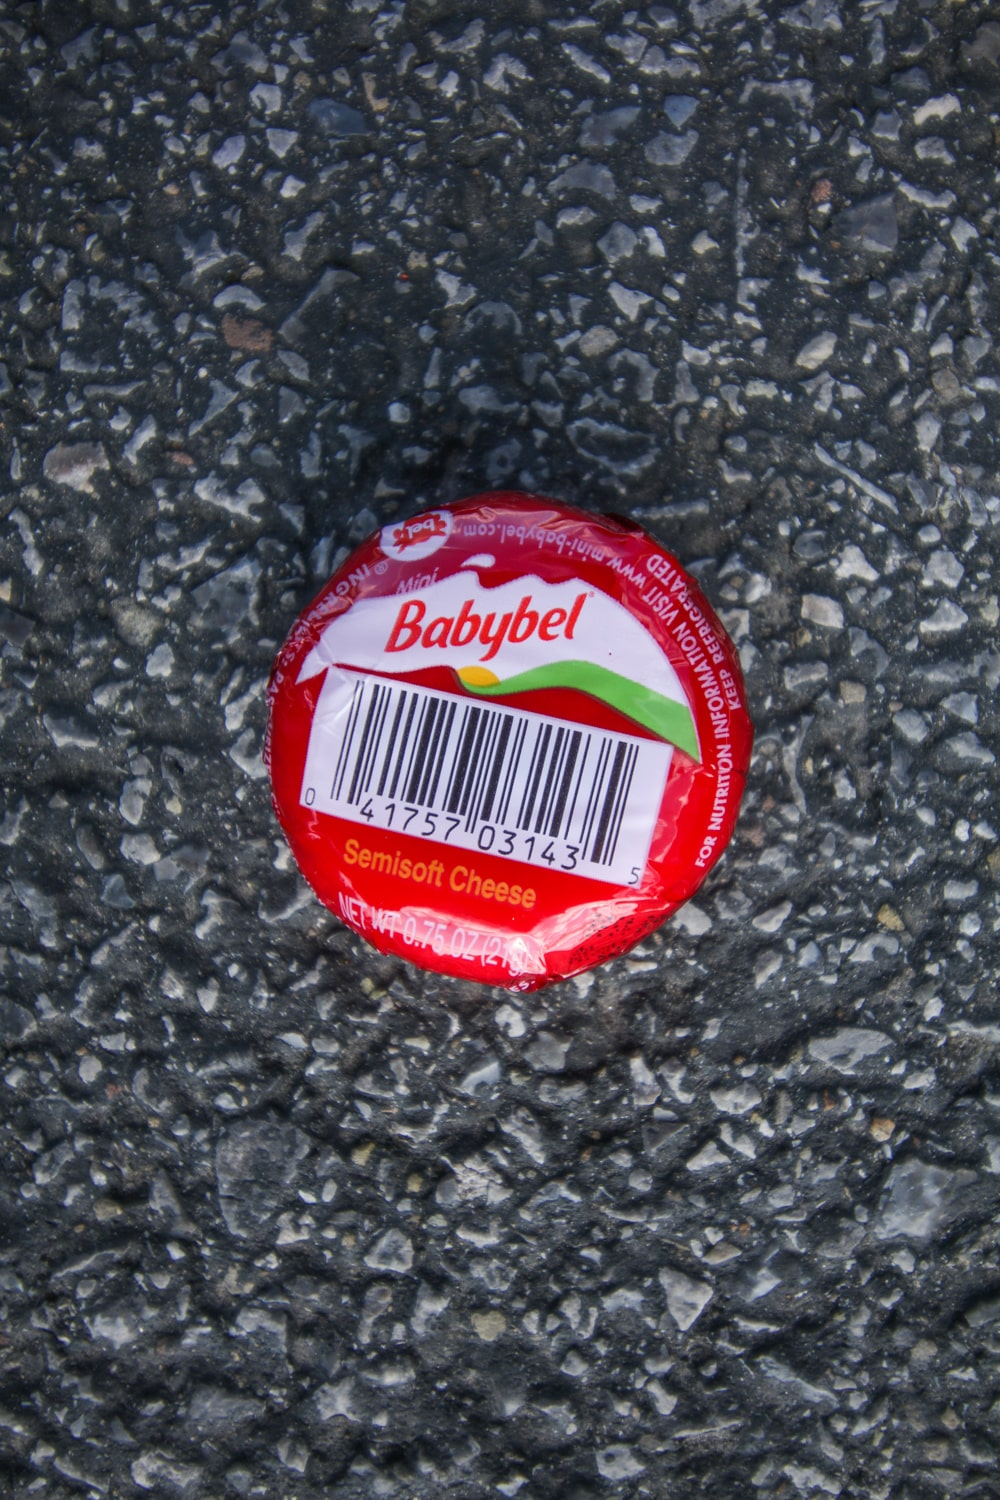 A single-serve Babybel cheese wheel.